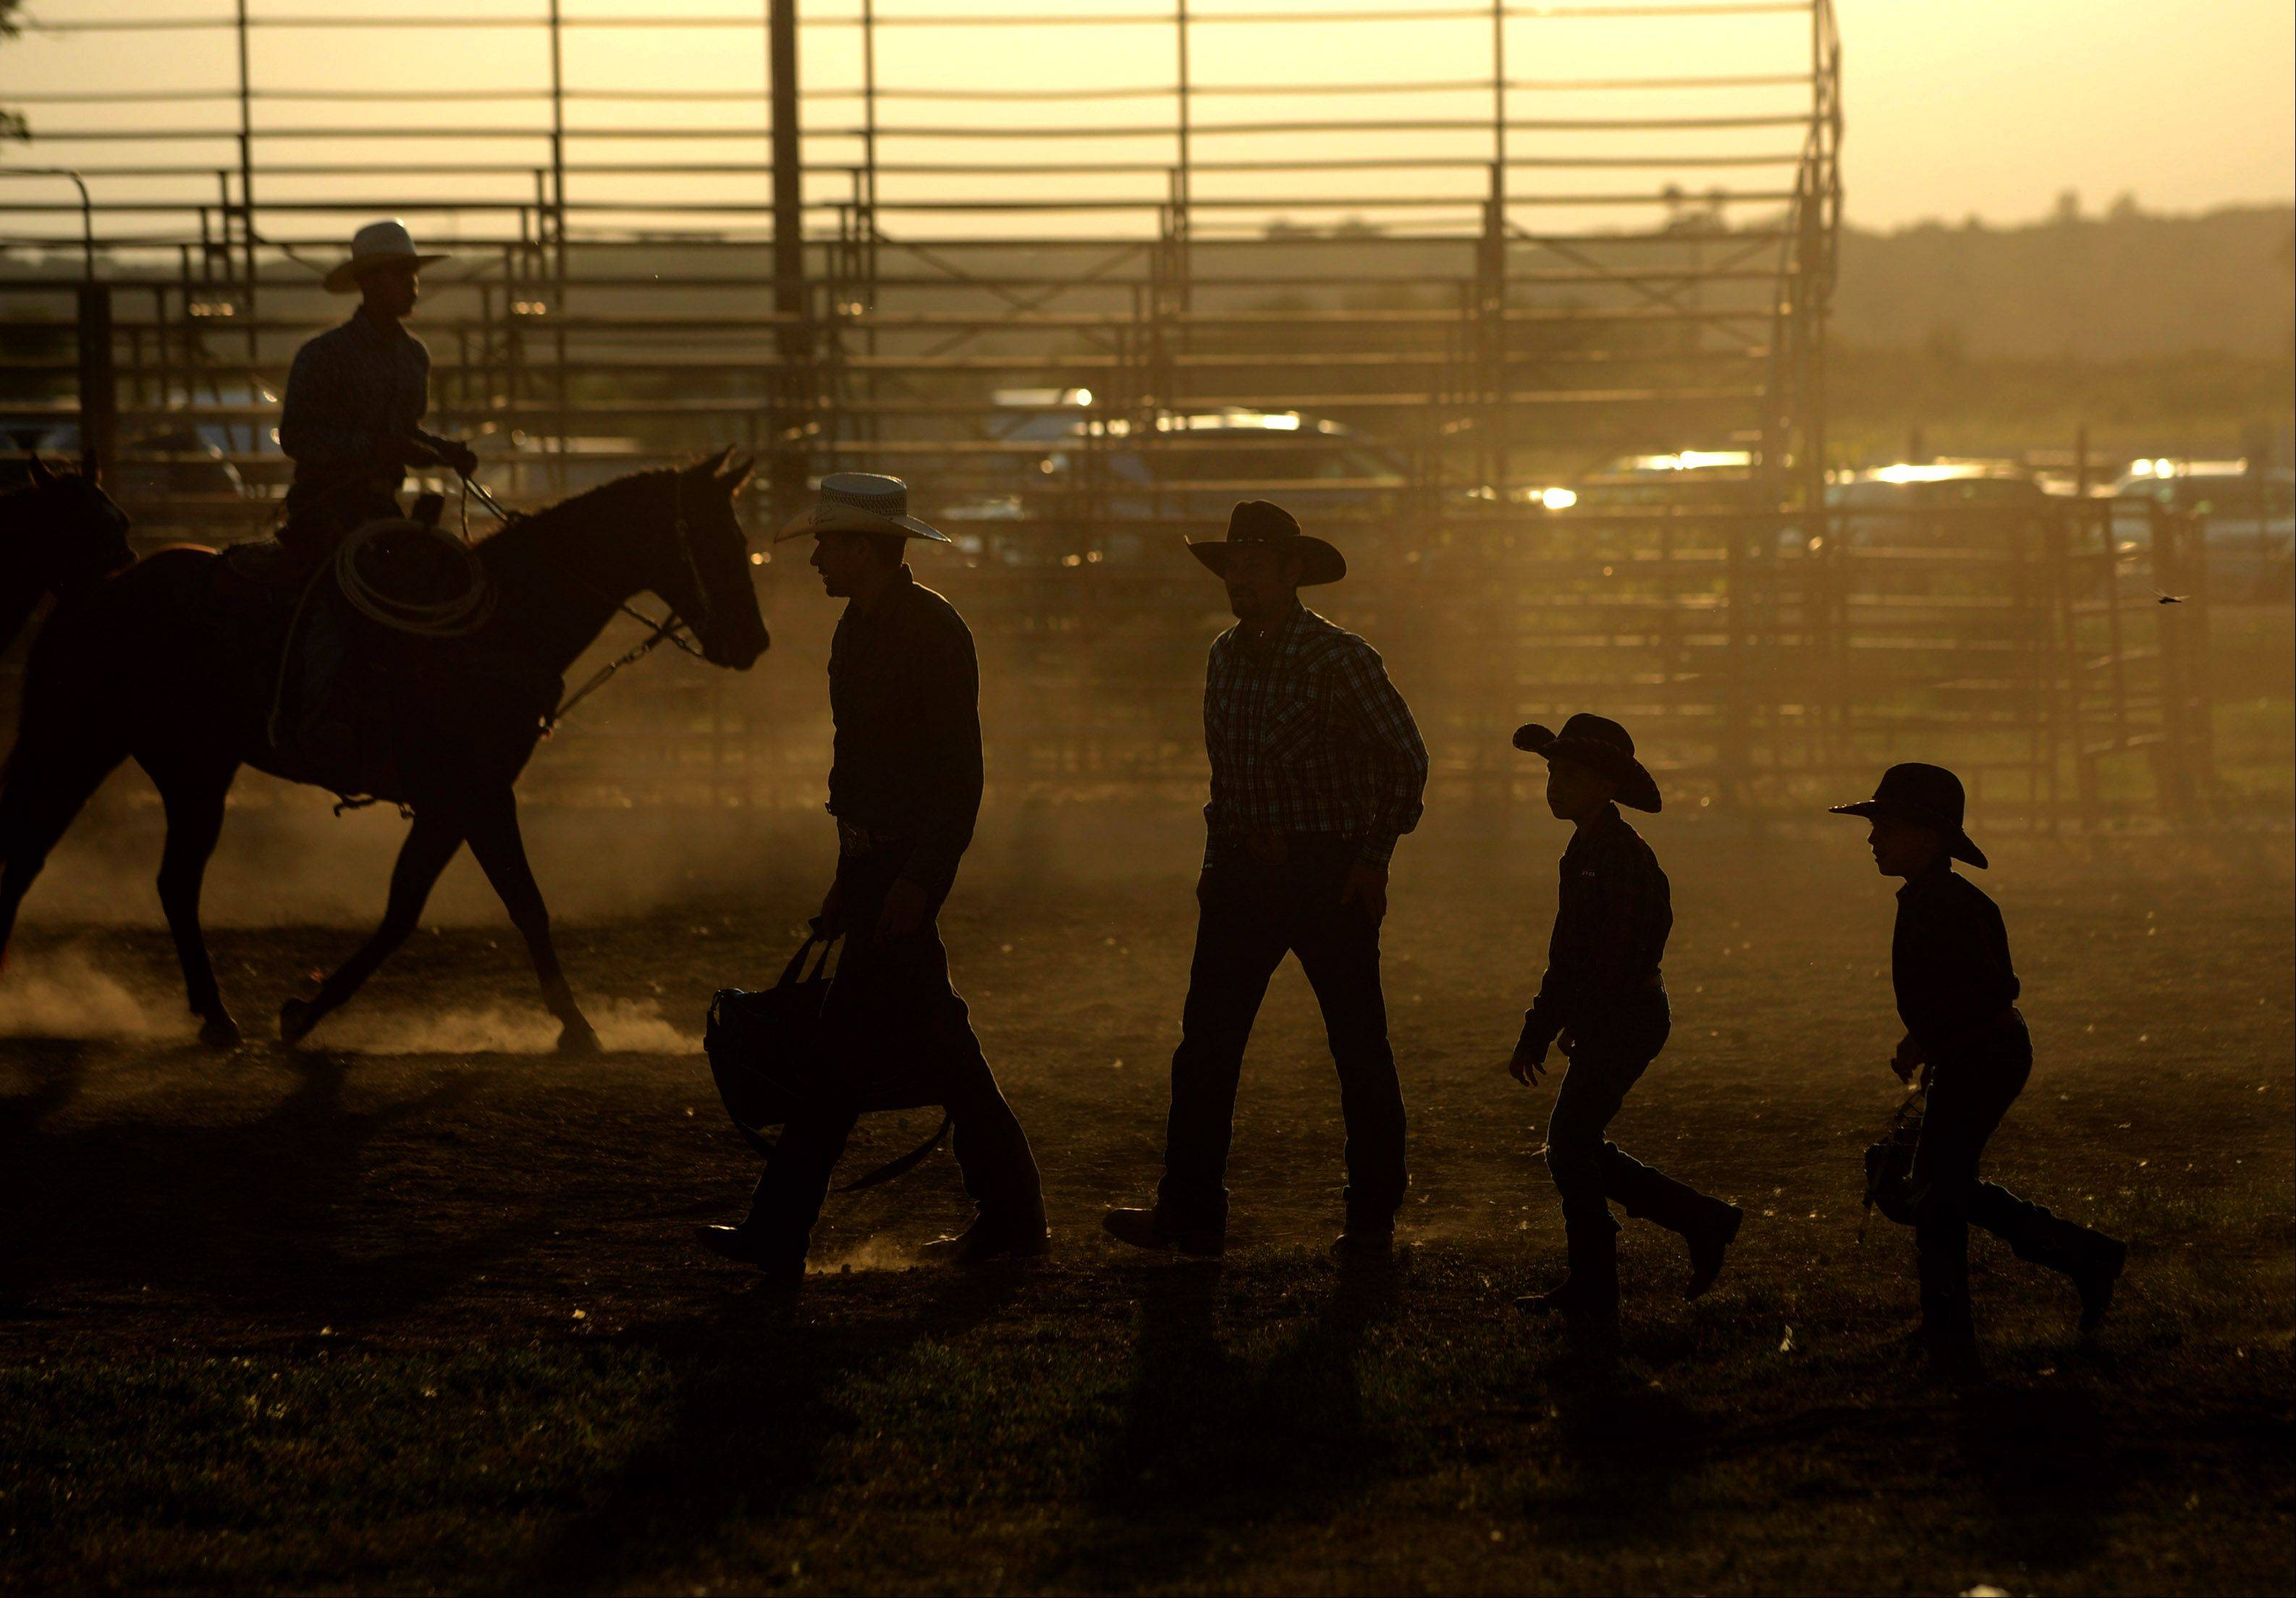 I admit that I'm a sucker for several photographic clich�s. So when I saw the combination of golden light from the setting sun and silhouettes of people in cowboy hats before the Championship Bull Riding event at the Kane County Fair in St. Charles, I couldn't help myself. There are worse tropes I suppose. Right? PERSPECTIVE is a weekly